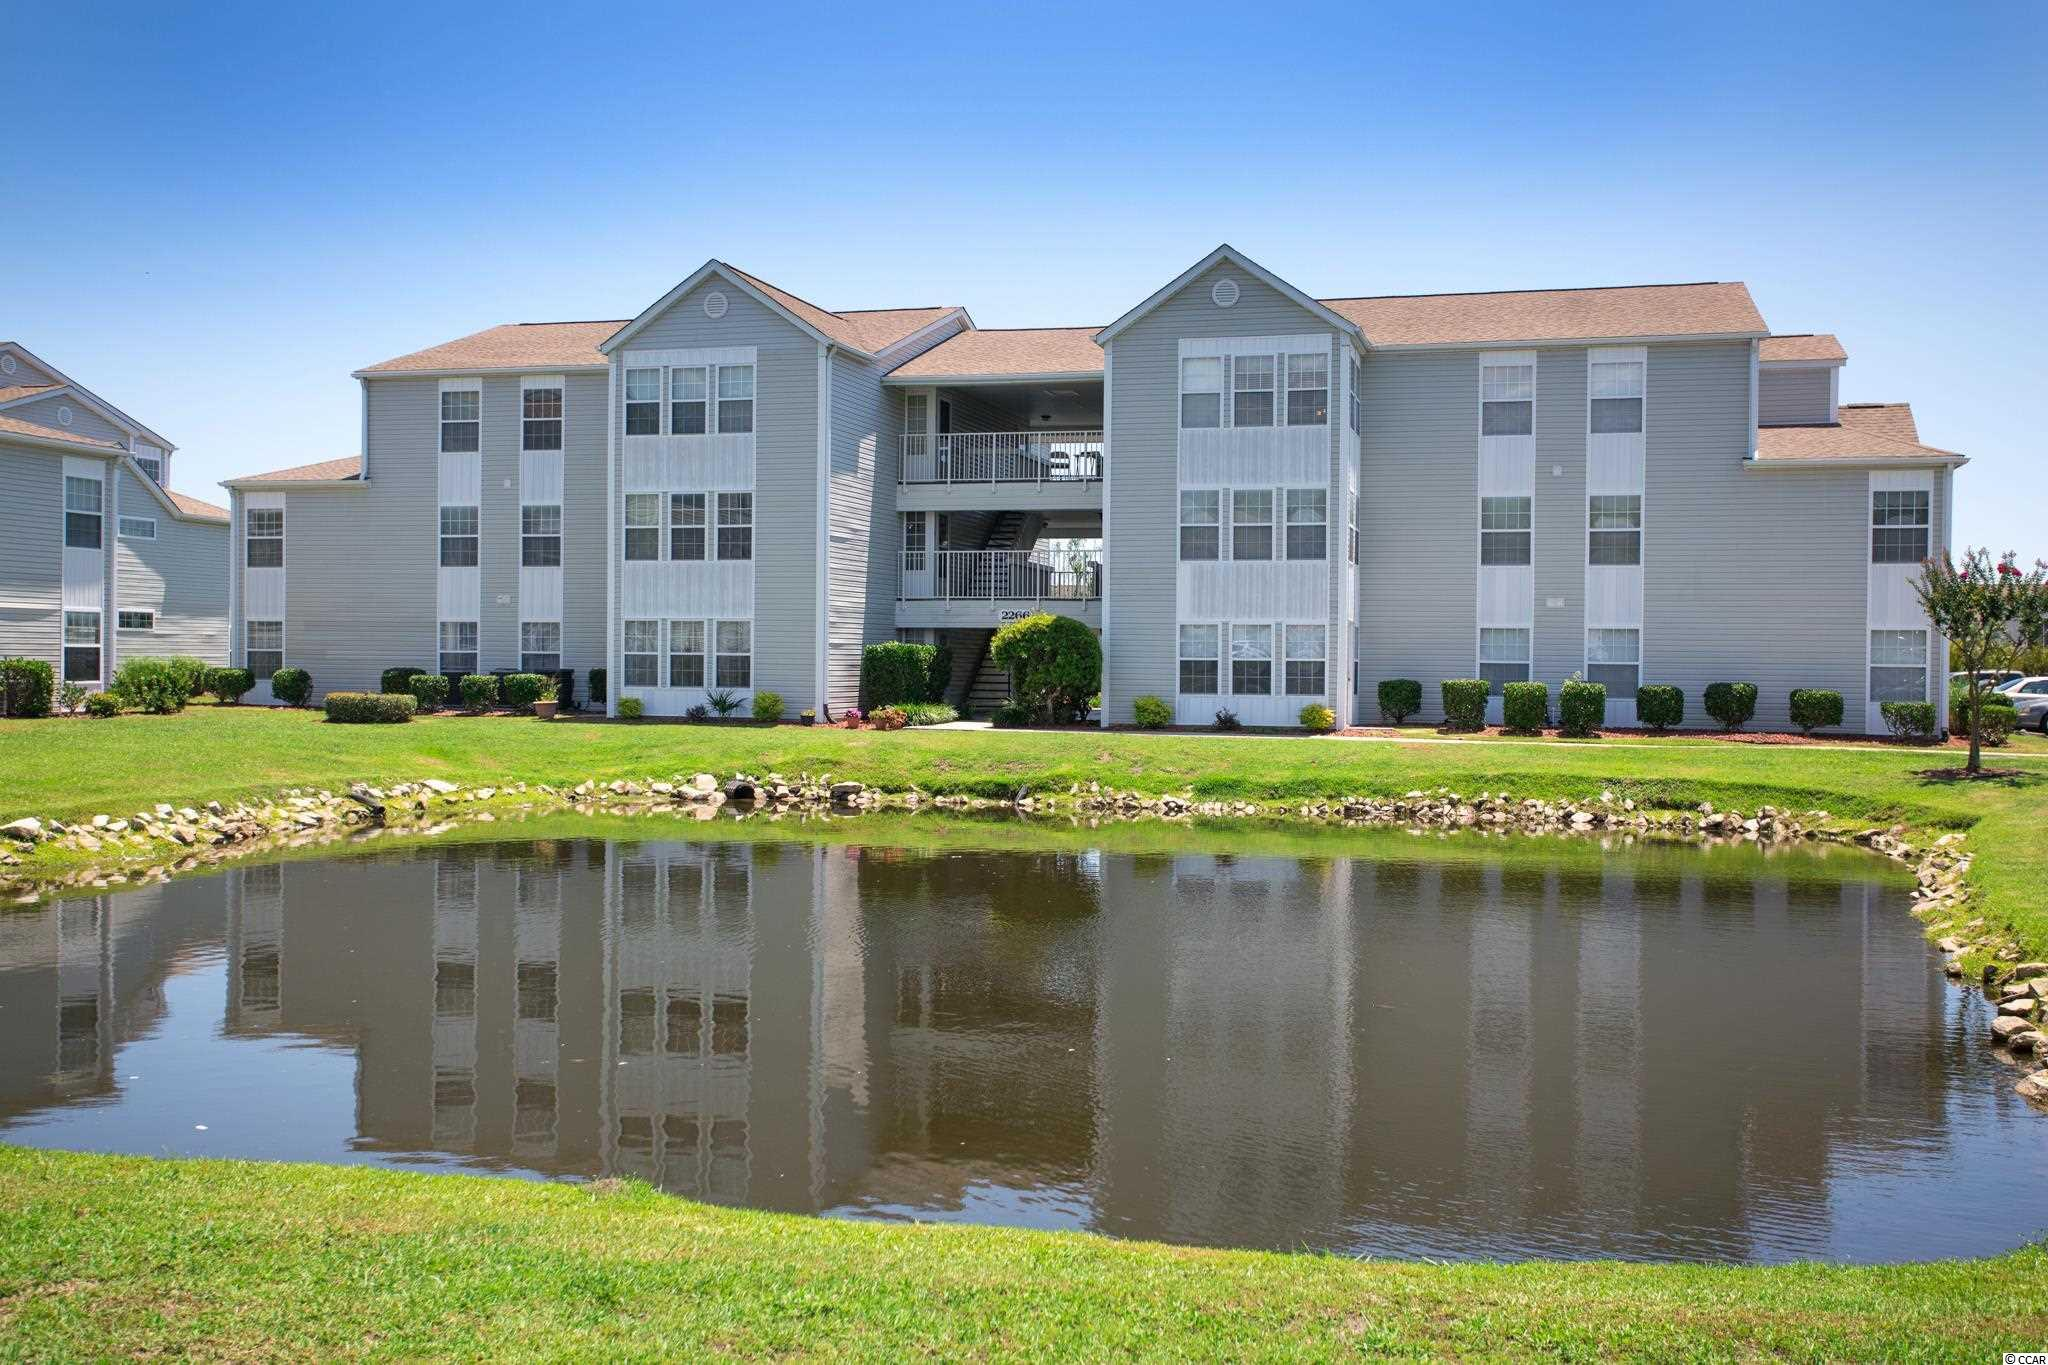 Very nice 3BR/2BA unit.  HVAC system new in 2019. Sunroom with gorgeous view of garden and lake.  Master with walk-in closet, master bath with vanity and shower.  2nd bath features tub/shower combo.  All appliances convey.  Home, sweet home or golf/beach retreat.  See today.